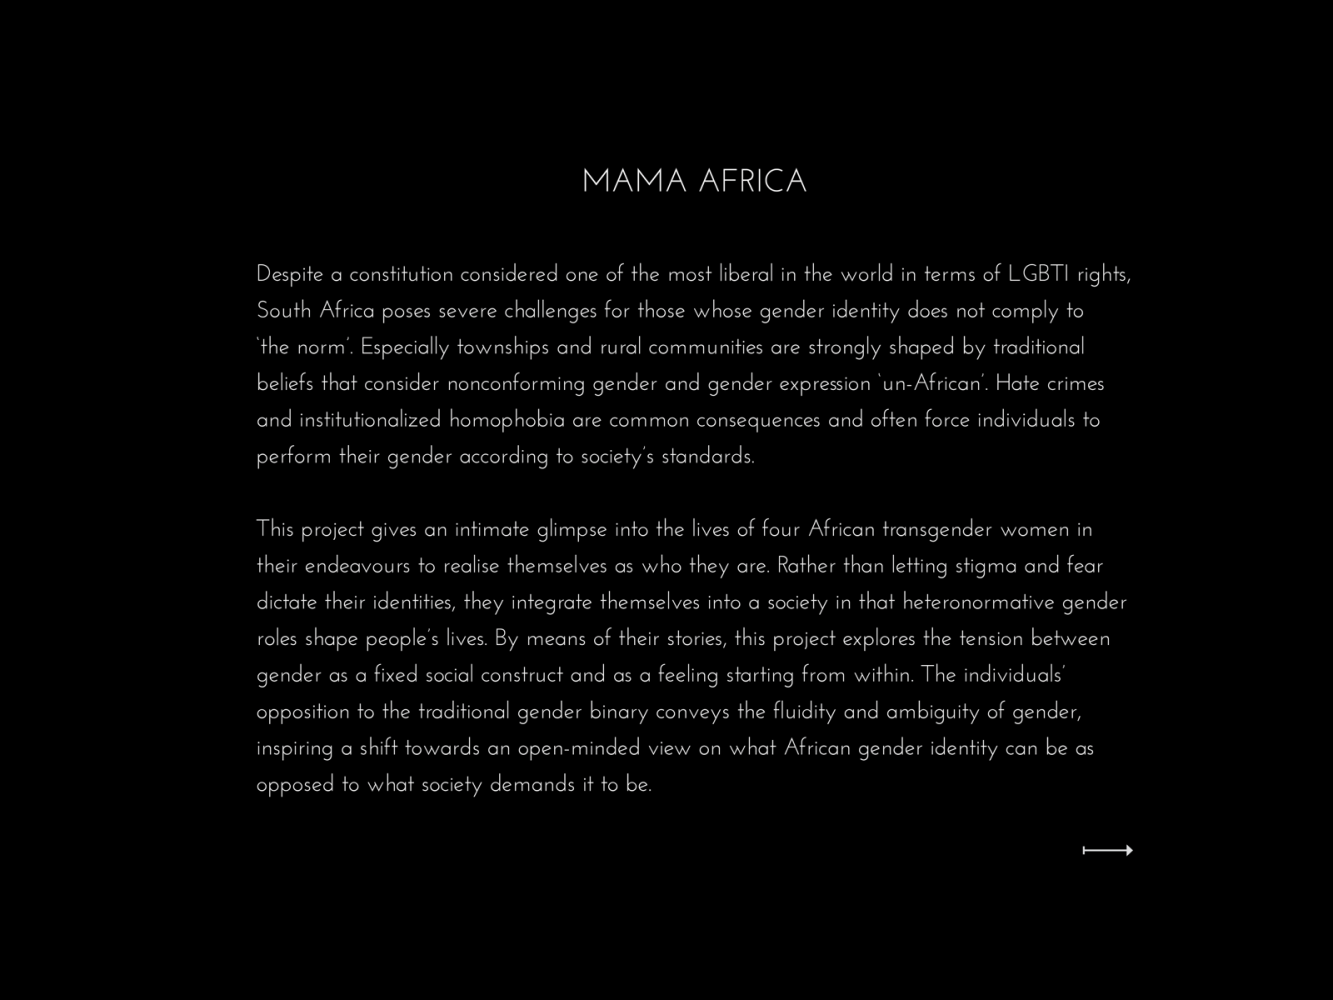 Photography image - Loading 3be1096a9b6704ad-MamaAfrica.png